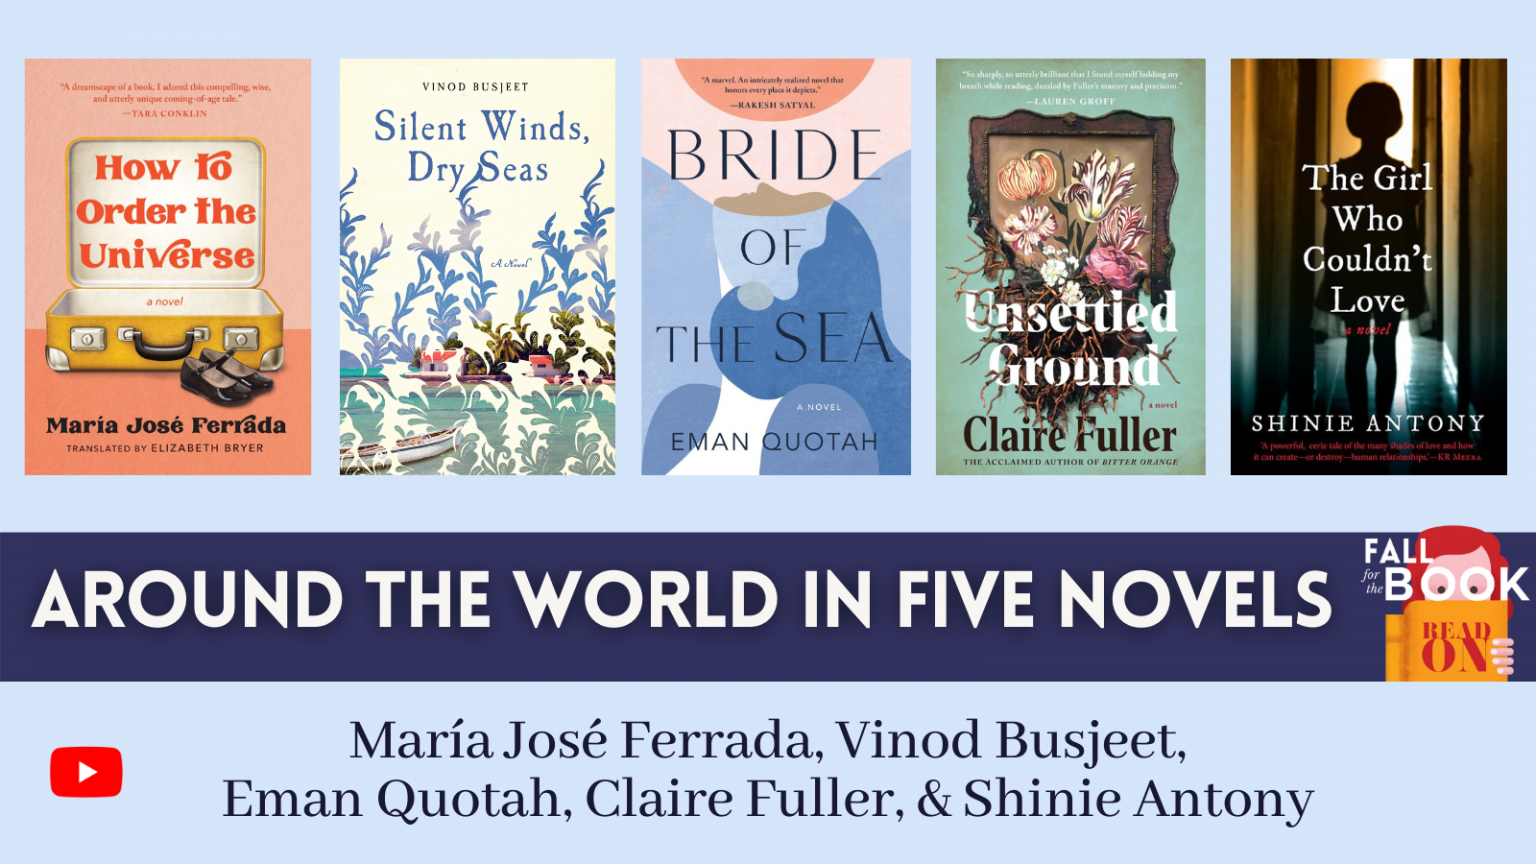 Around the world in five novels